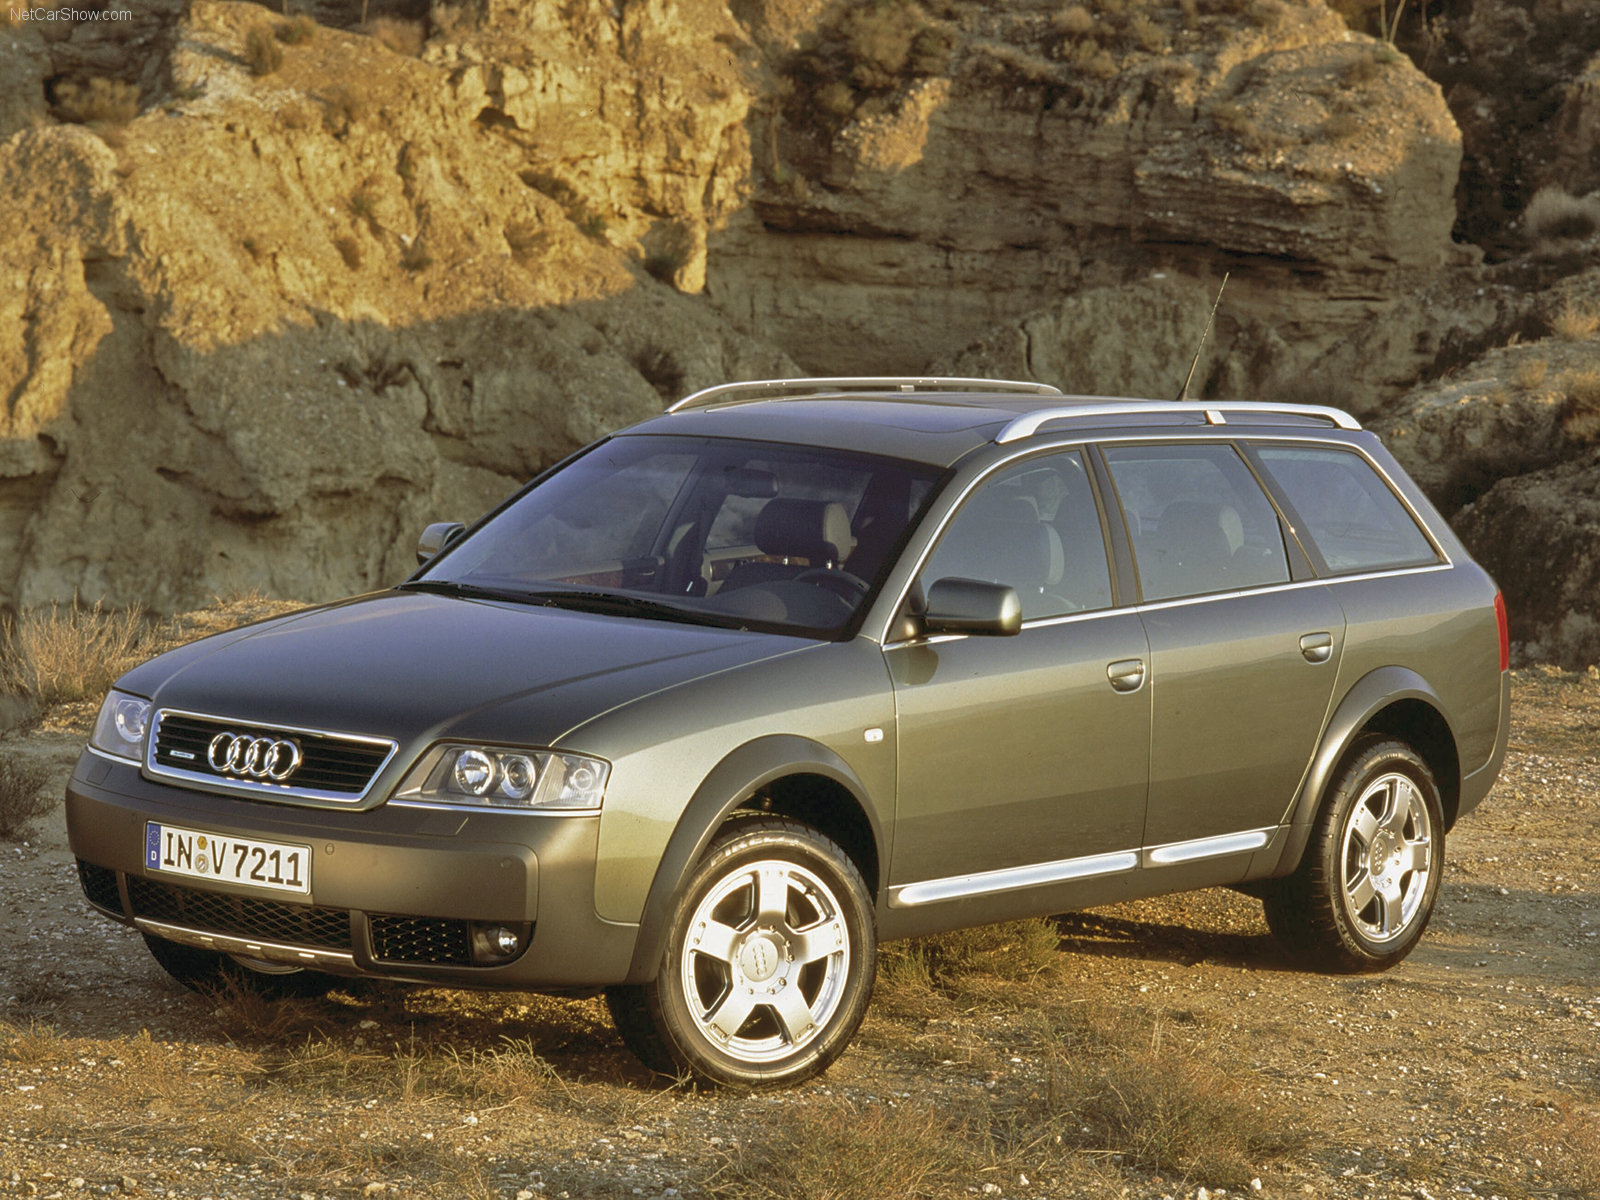 Choose Wisely Audi Allroad C5 Car Guys Paradise Volvo 5 Cylinder Engine Problems Diesel Engines Which Had 25 Tdi V6 4 Valve Per With 150 155 163 179 Horsepower Codes Afb Akn Aym Bfc Bcz Bdg Ake